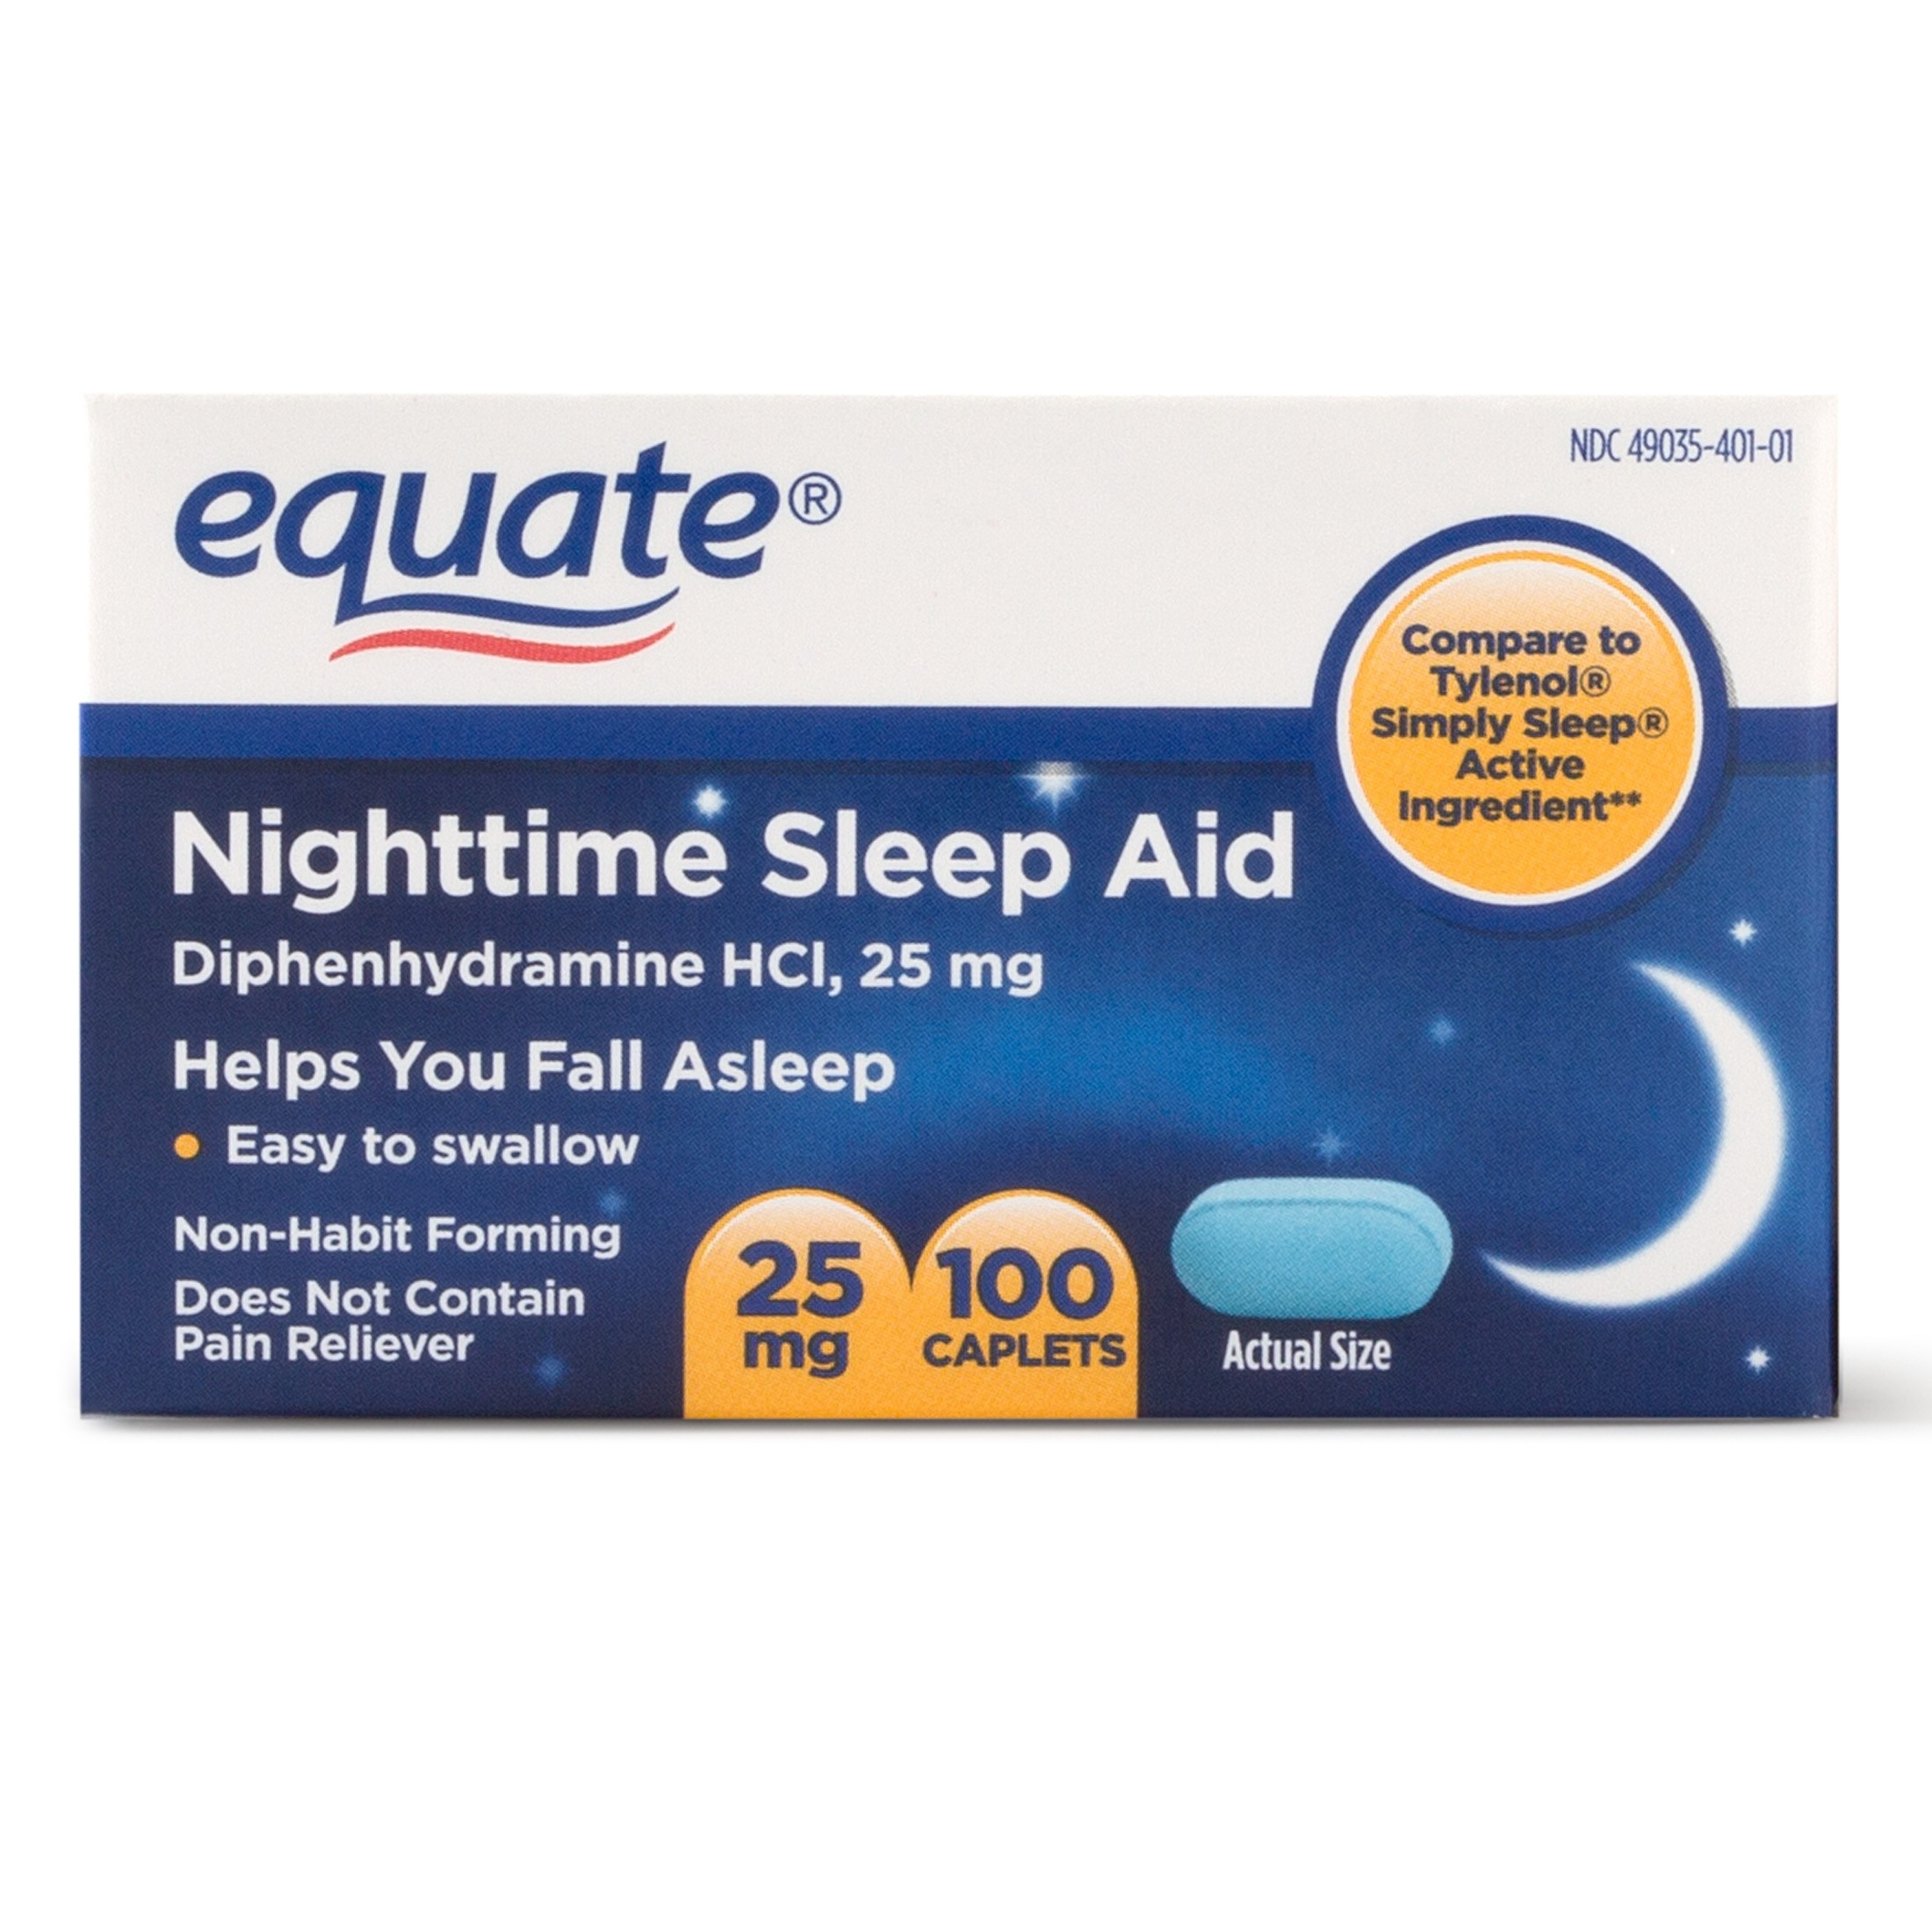 Equate Nighttime Sleep Aid Diphenhydramine Hcl Caplets, 25 Mg, 100 with Pills To Help You Sleep 46005